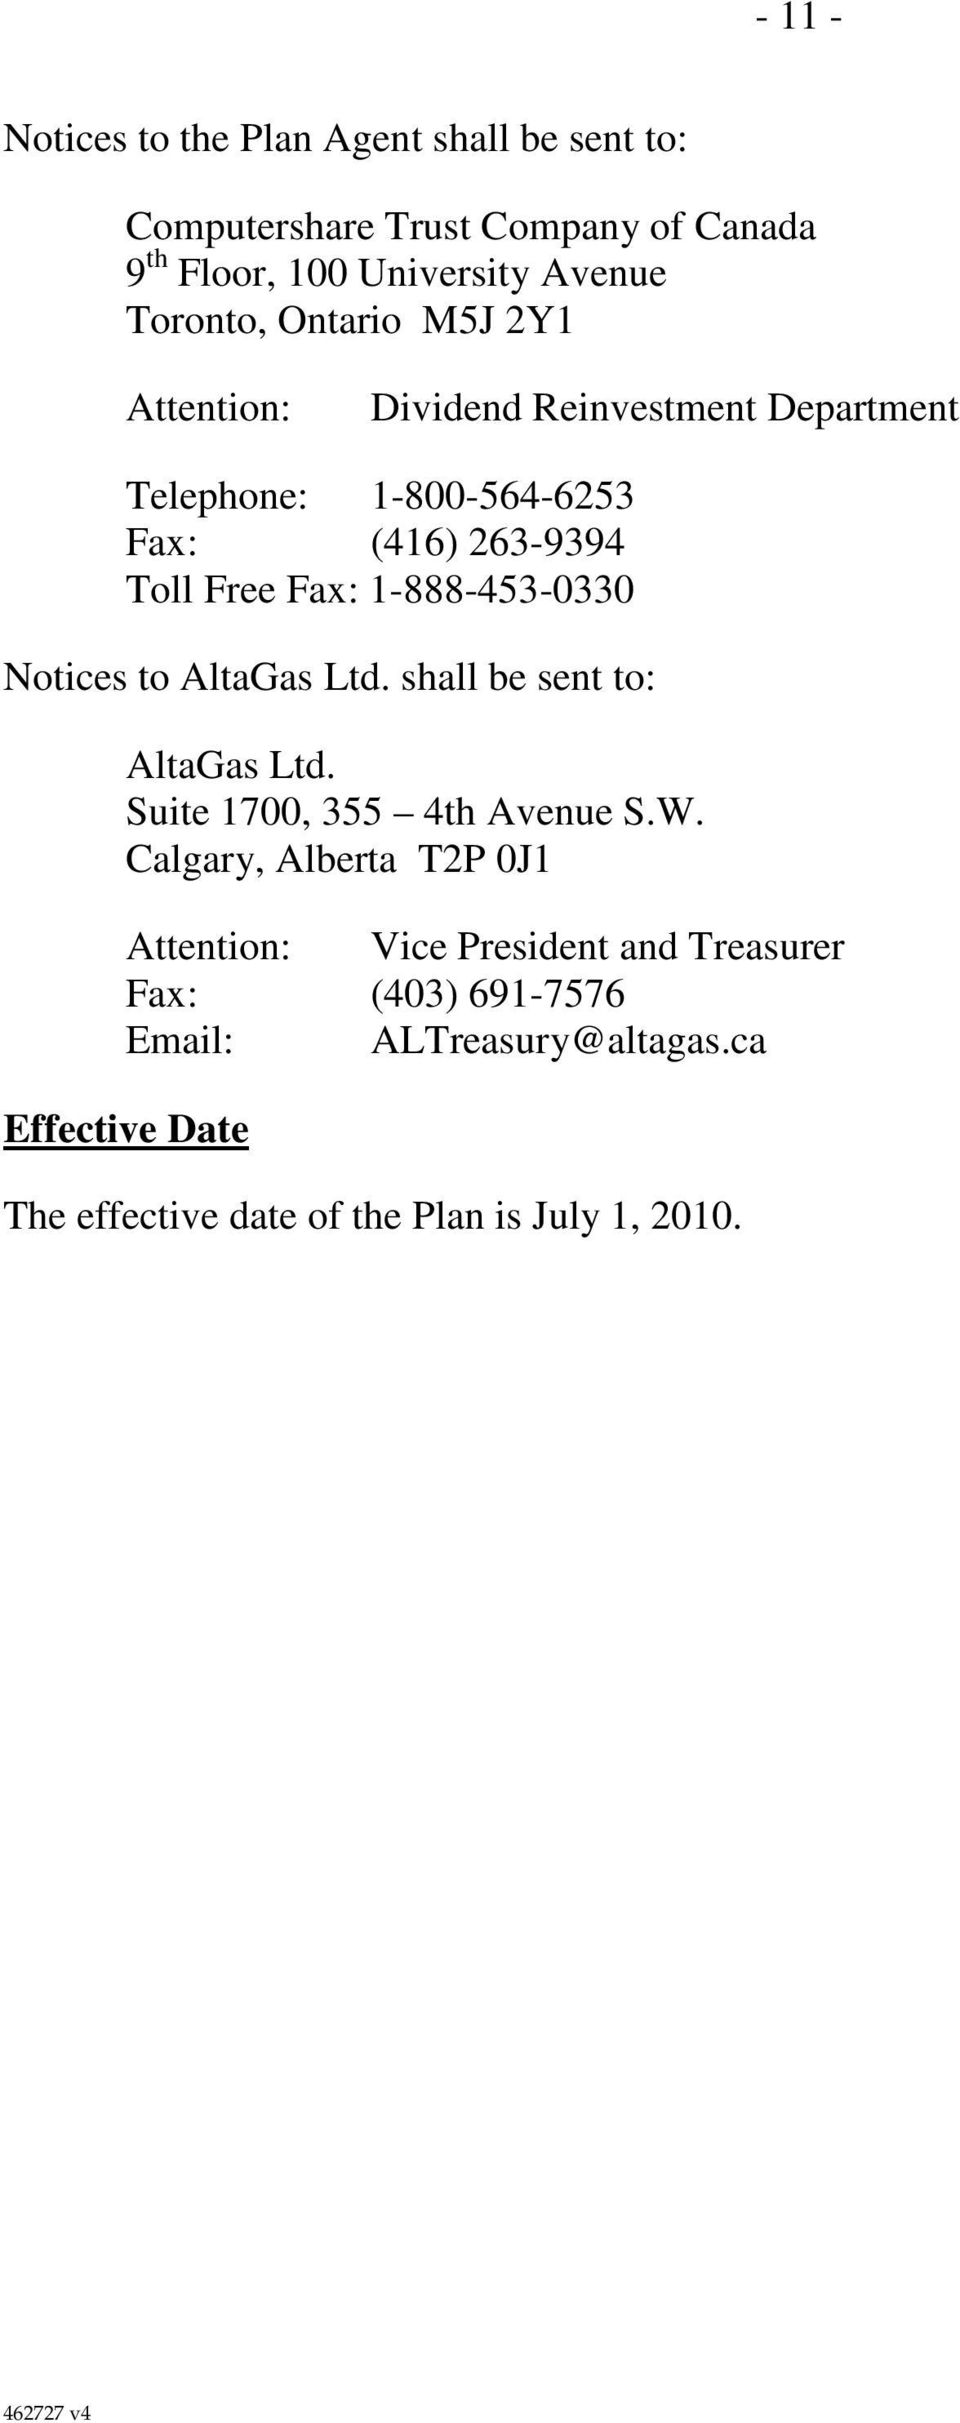 1-888-453-0330 Notices to AltaGas Ltd. shall be sent to: AltaGas Ltd. Suite 1700, 355 4th Avenue S.W.